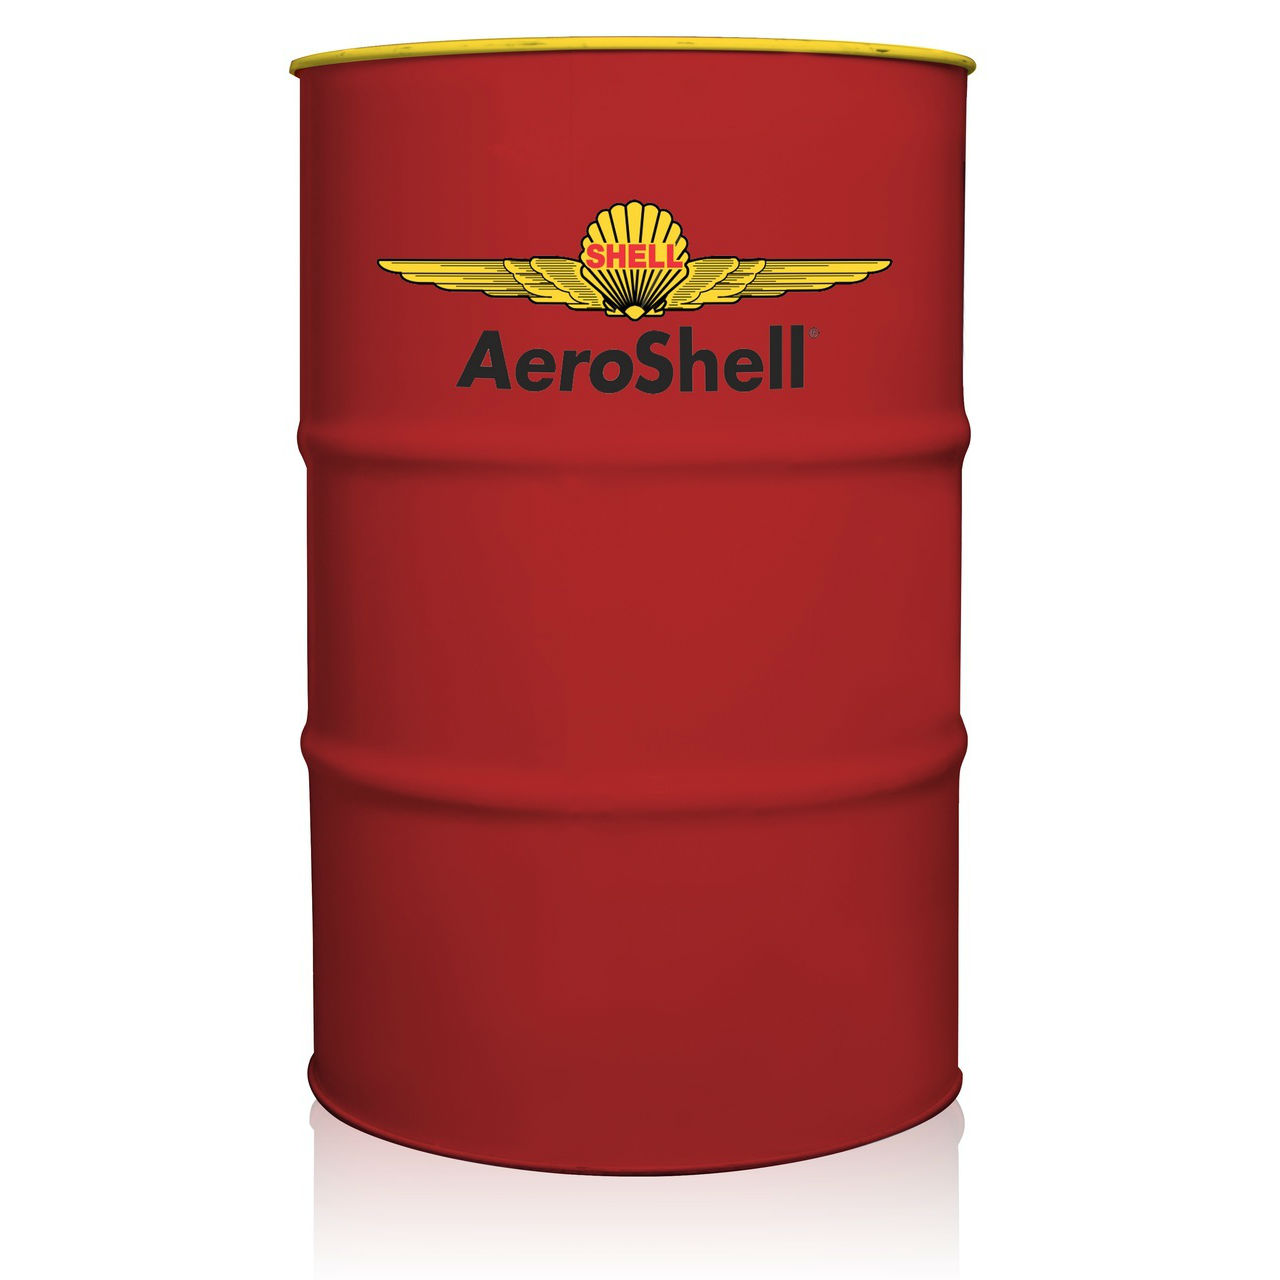 AeroShell Oil W 15W-50 - 55 Gallon Drum